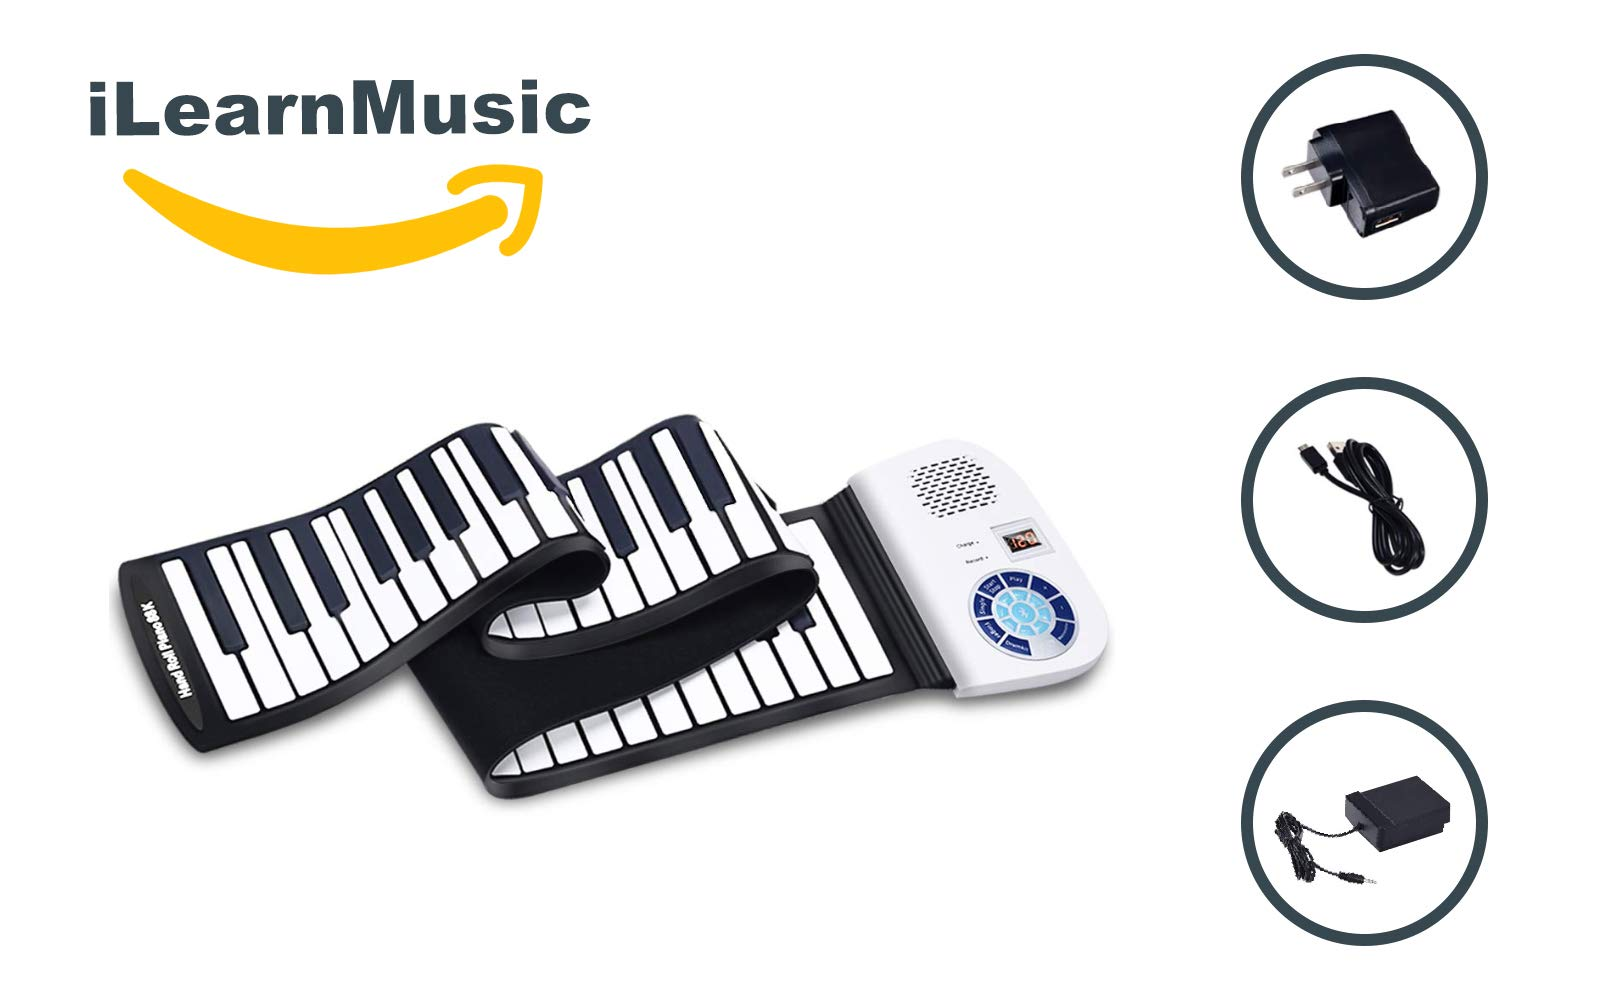 iLearnMusic Roll Up Piano, Premium Grade Silicone, Built-in Speakers - Educational Piano (61 Keys (F61)) by iLearnMusic (Image #2)